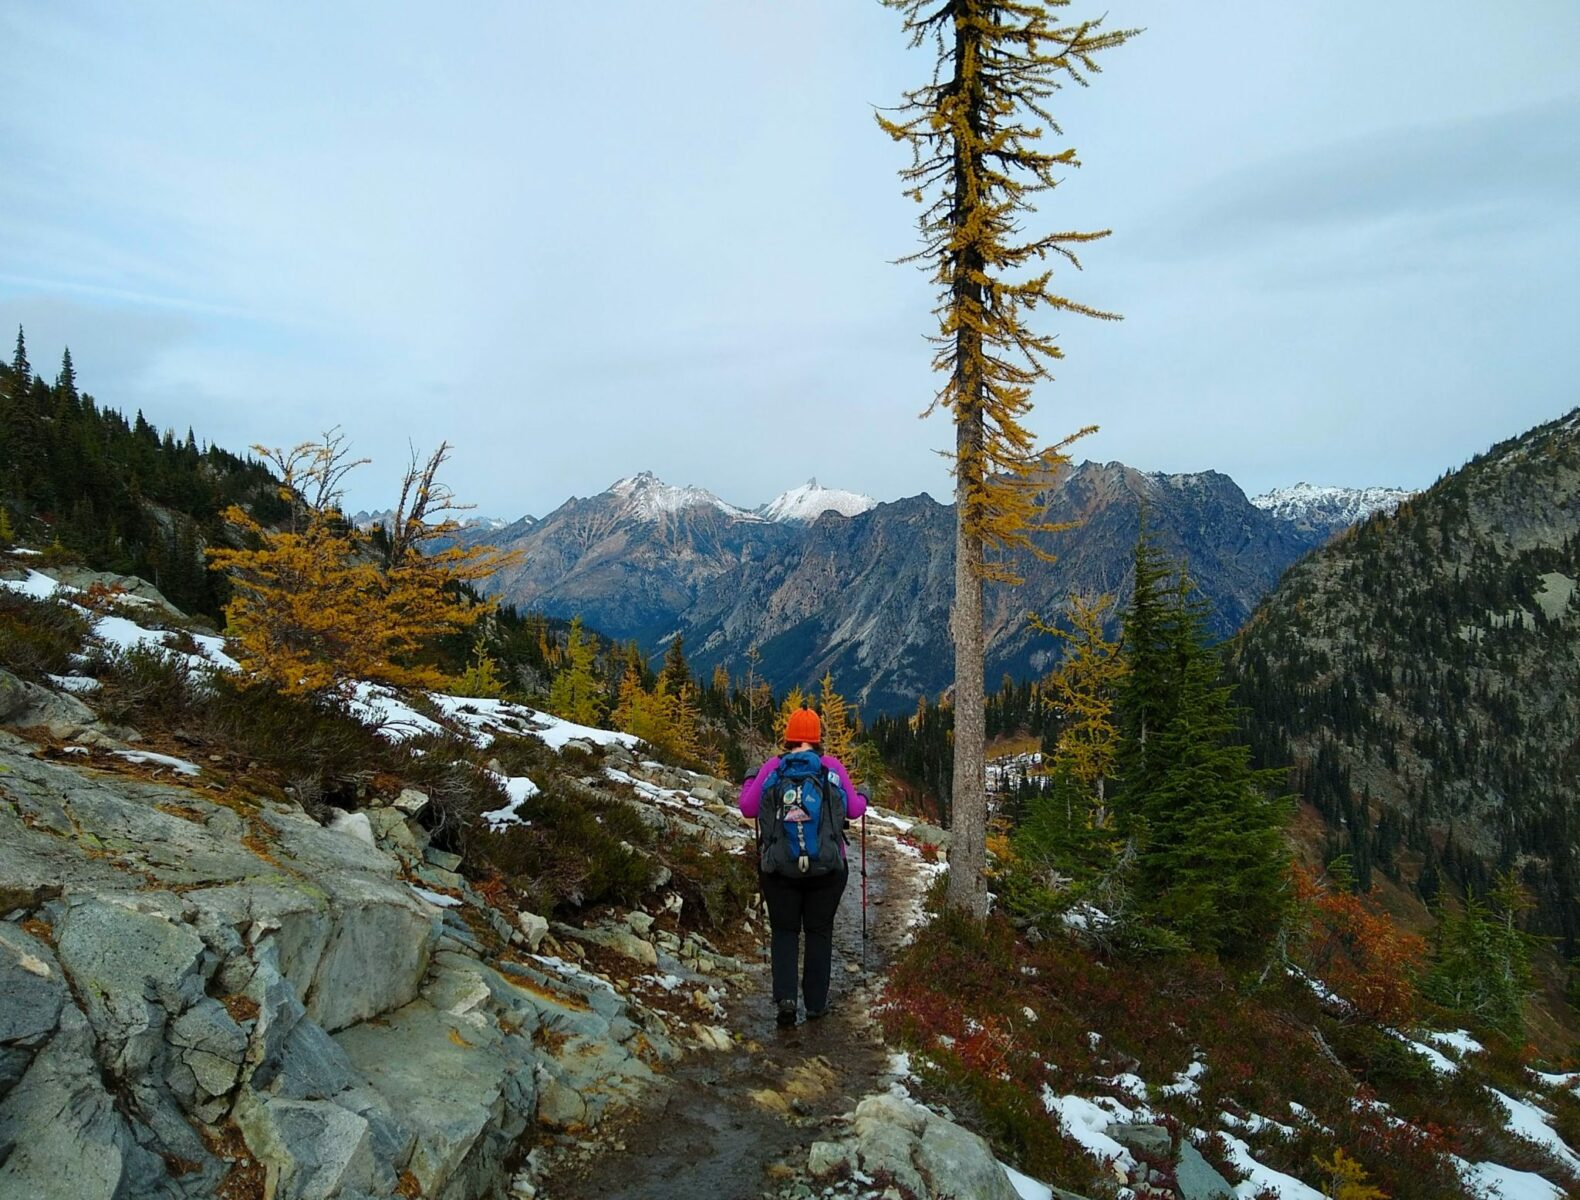 A hiker on a trail next to a tall orange larch tree in October. In the distance are snow dusted mountains